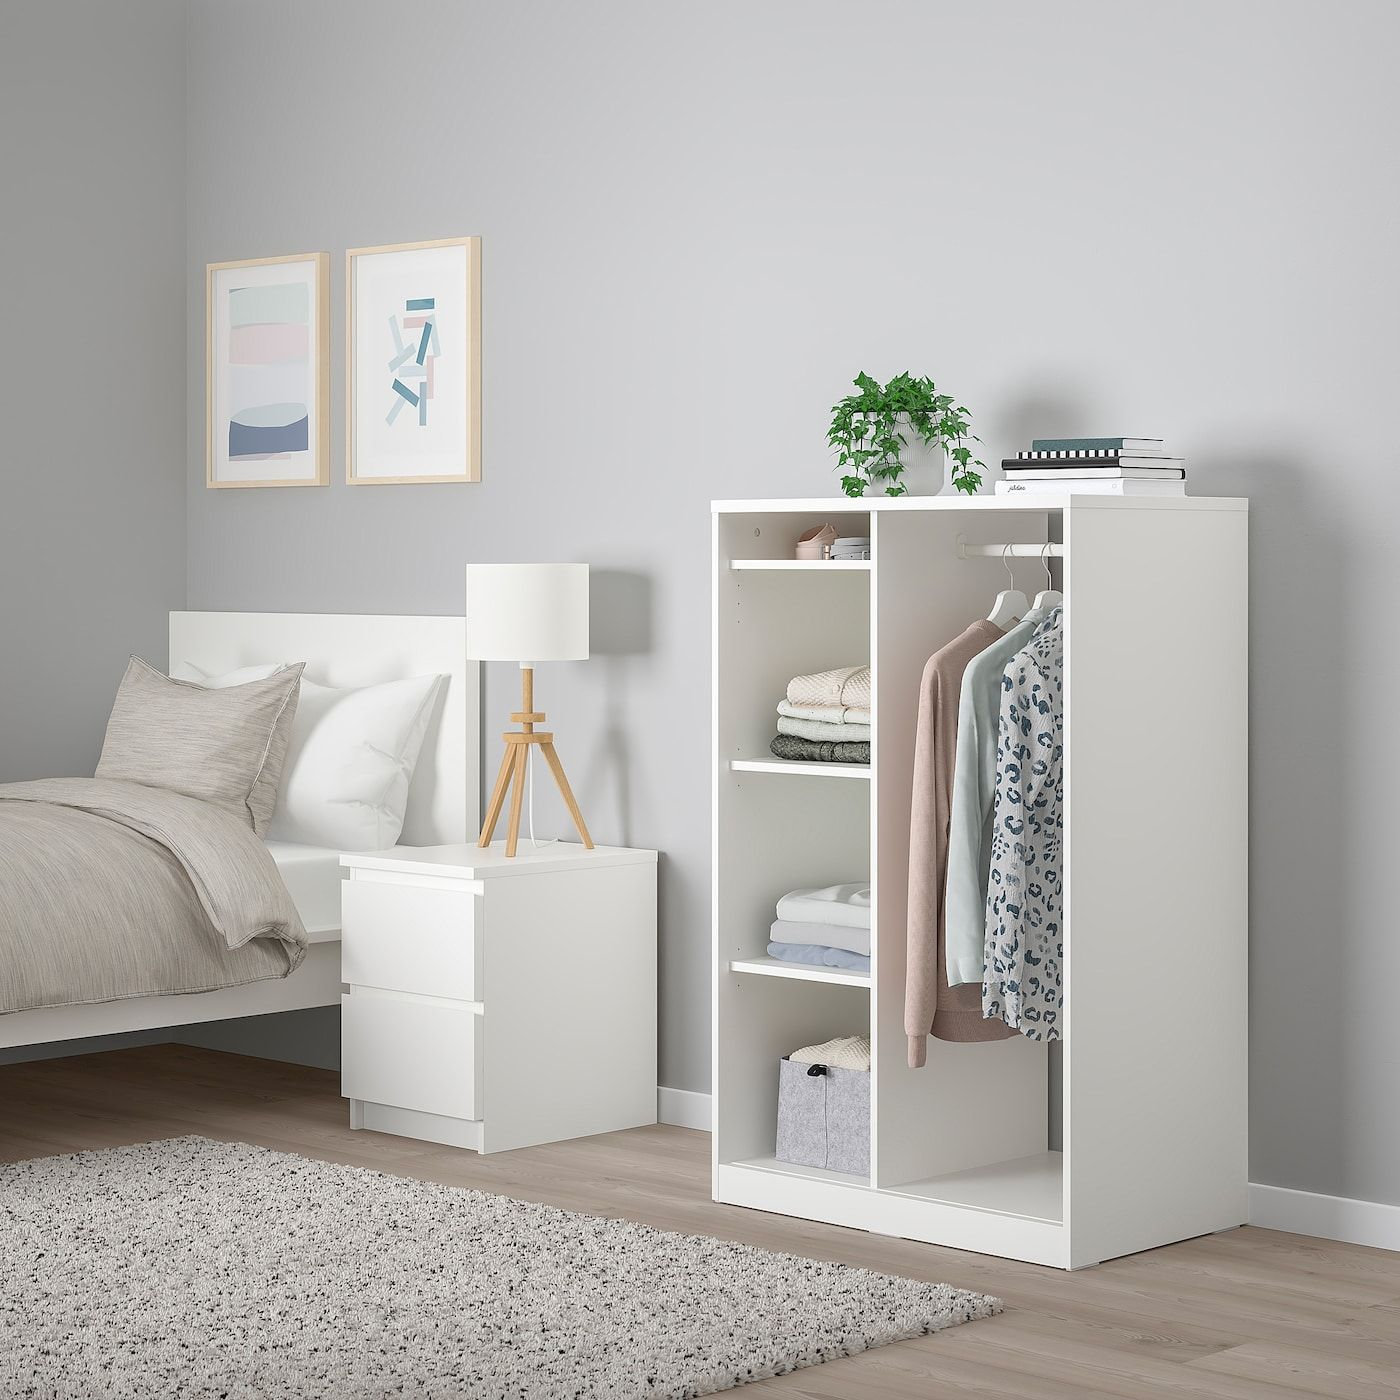 Syvde Open Wardrobe White Ikea Ikea Bedroom Furniture Ikea Closet Design Ikea Bedroom Sets